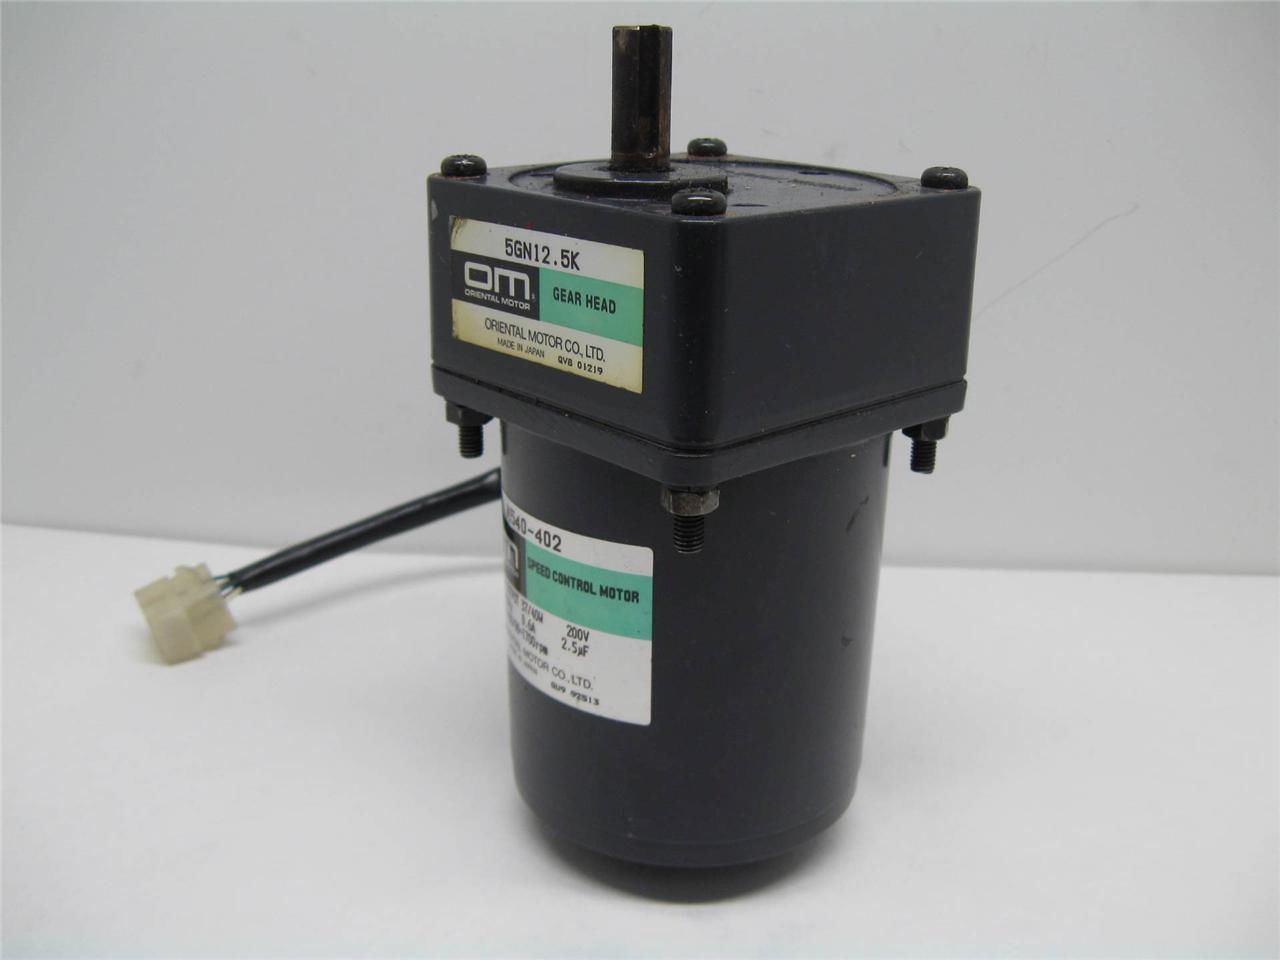 Oriental motor m540 402 speed control motor w 5gn12 5k for Motor with speed control